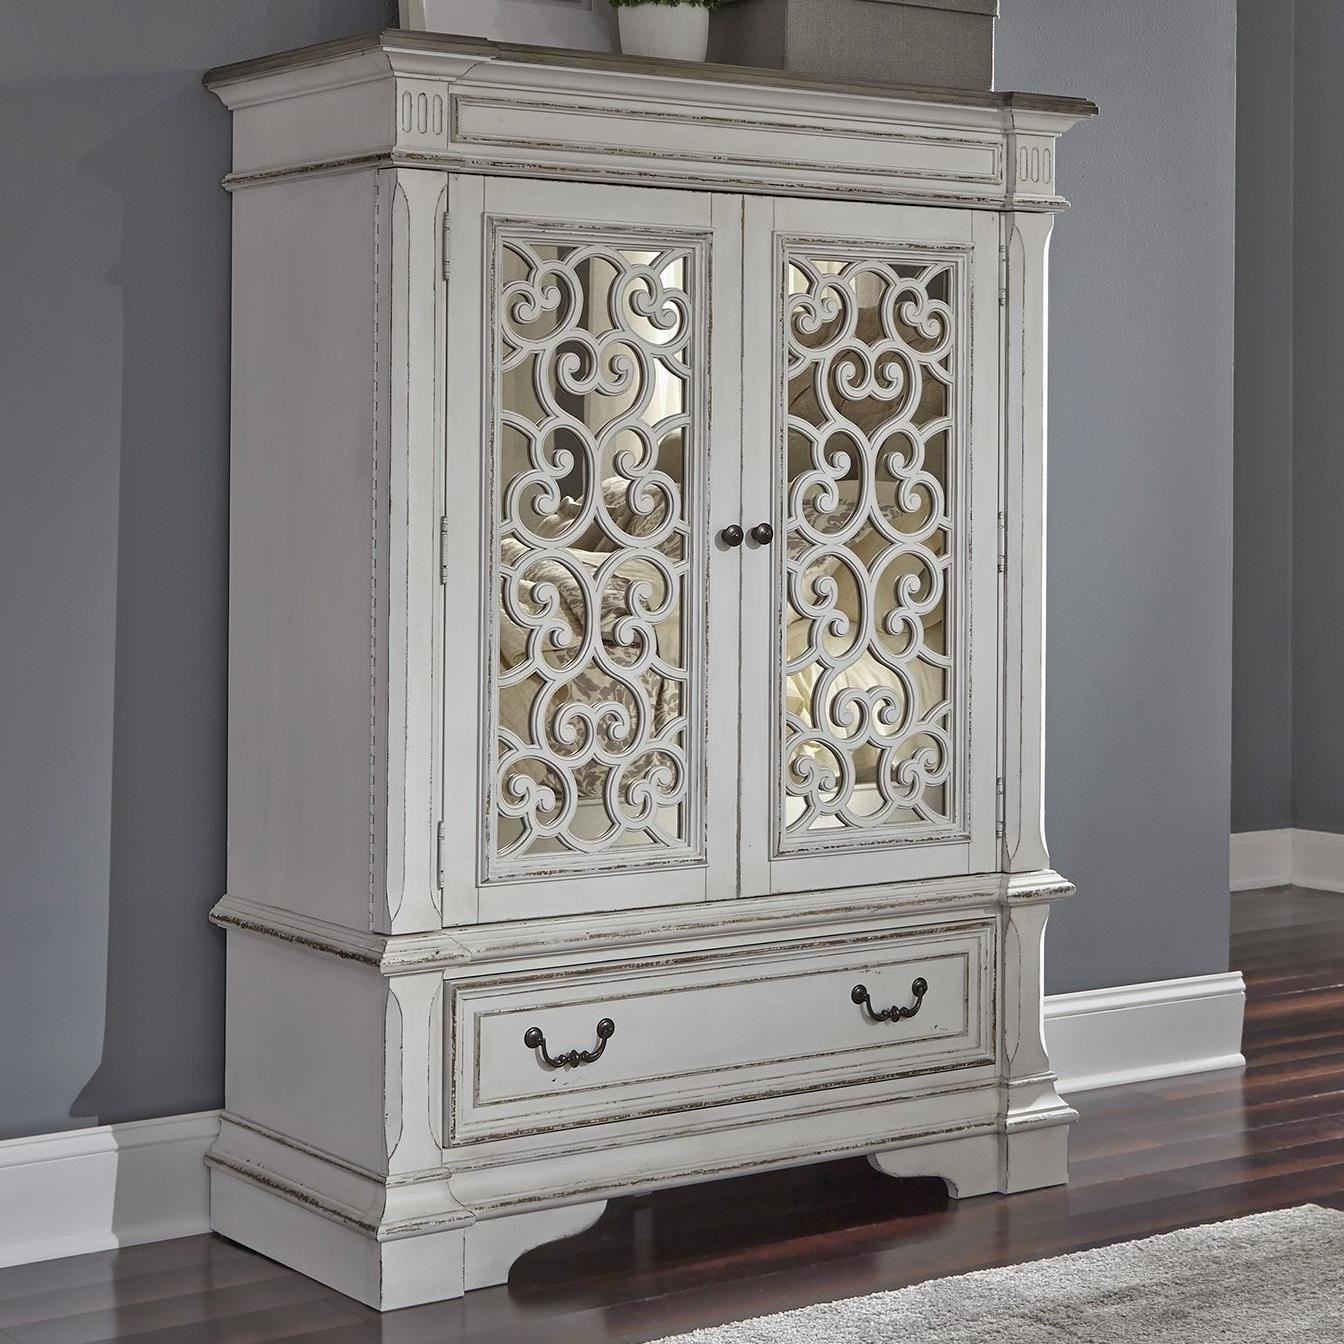 Abbey Park Chest with Doors by Liberty Furniture at Esprit Decor Home Furnishings